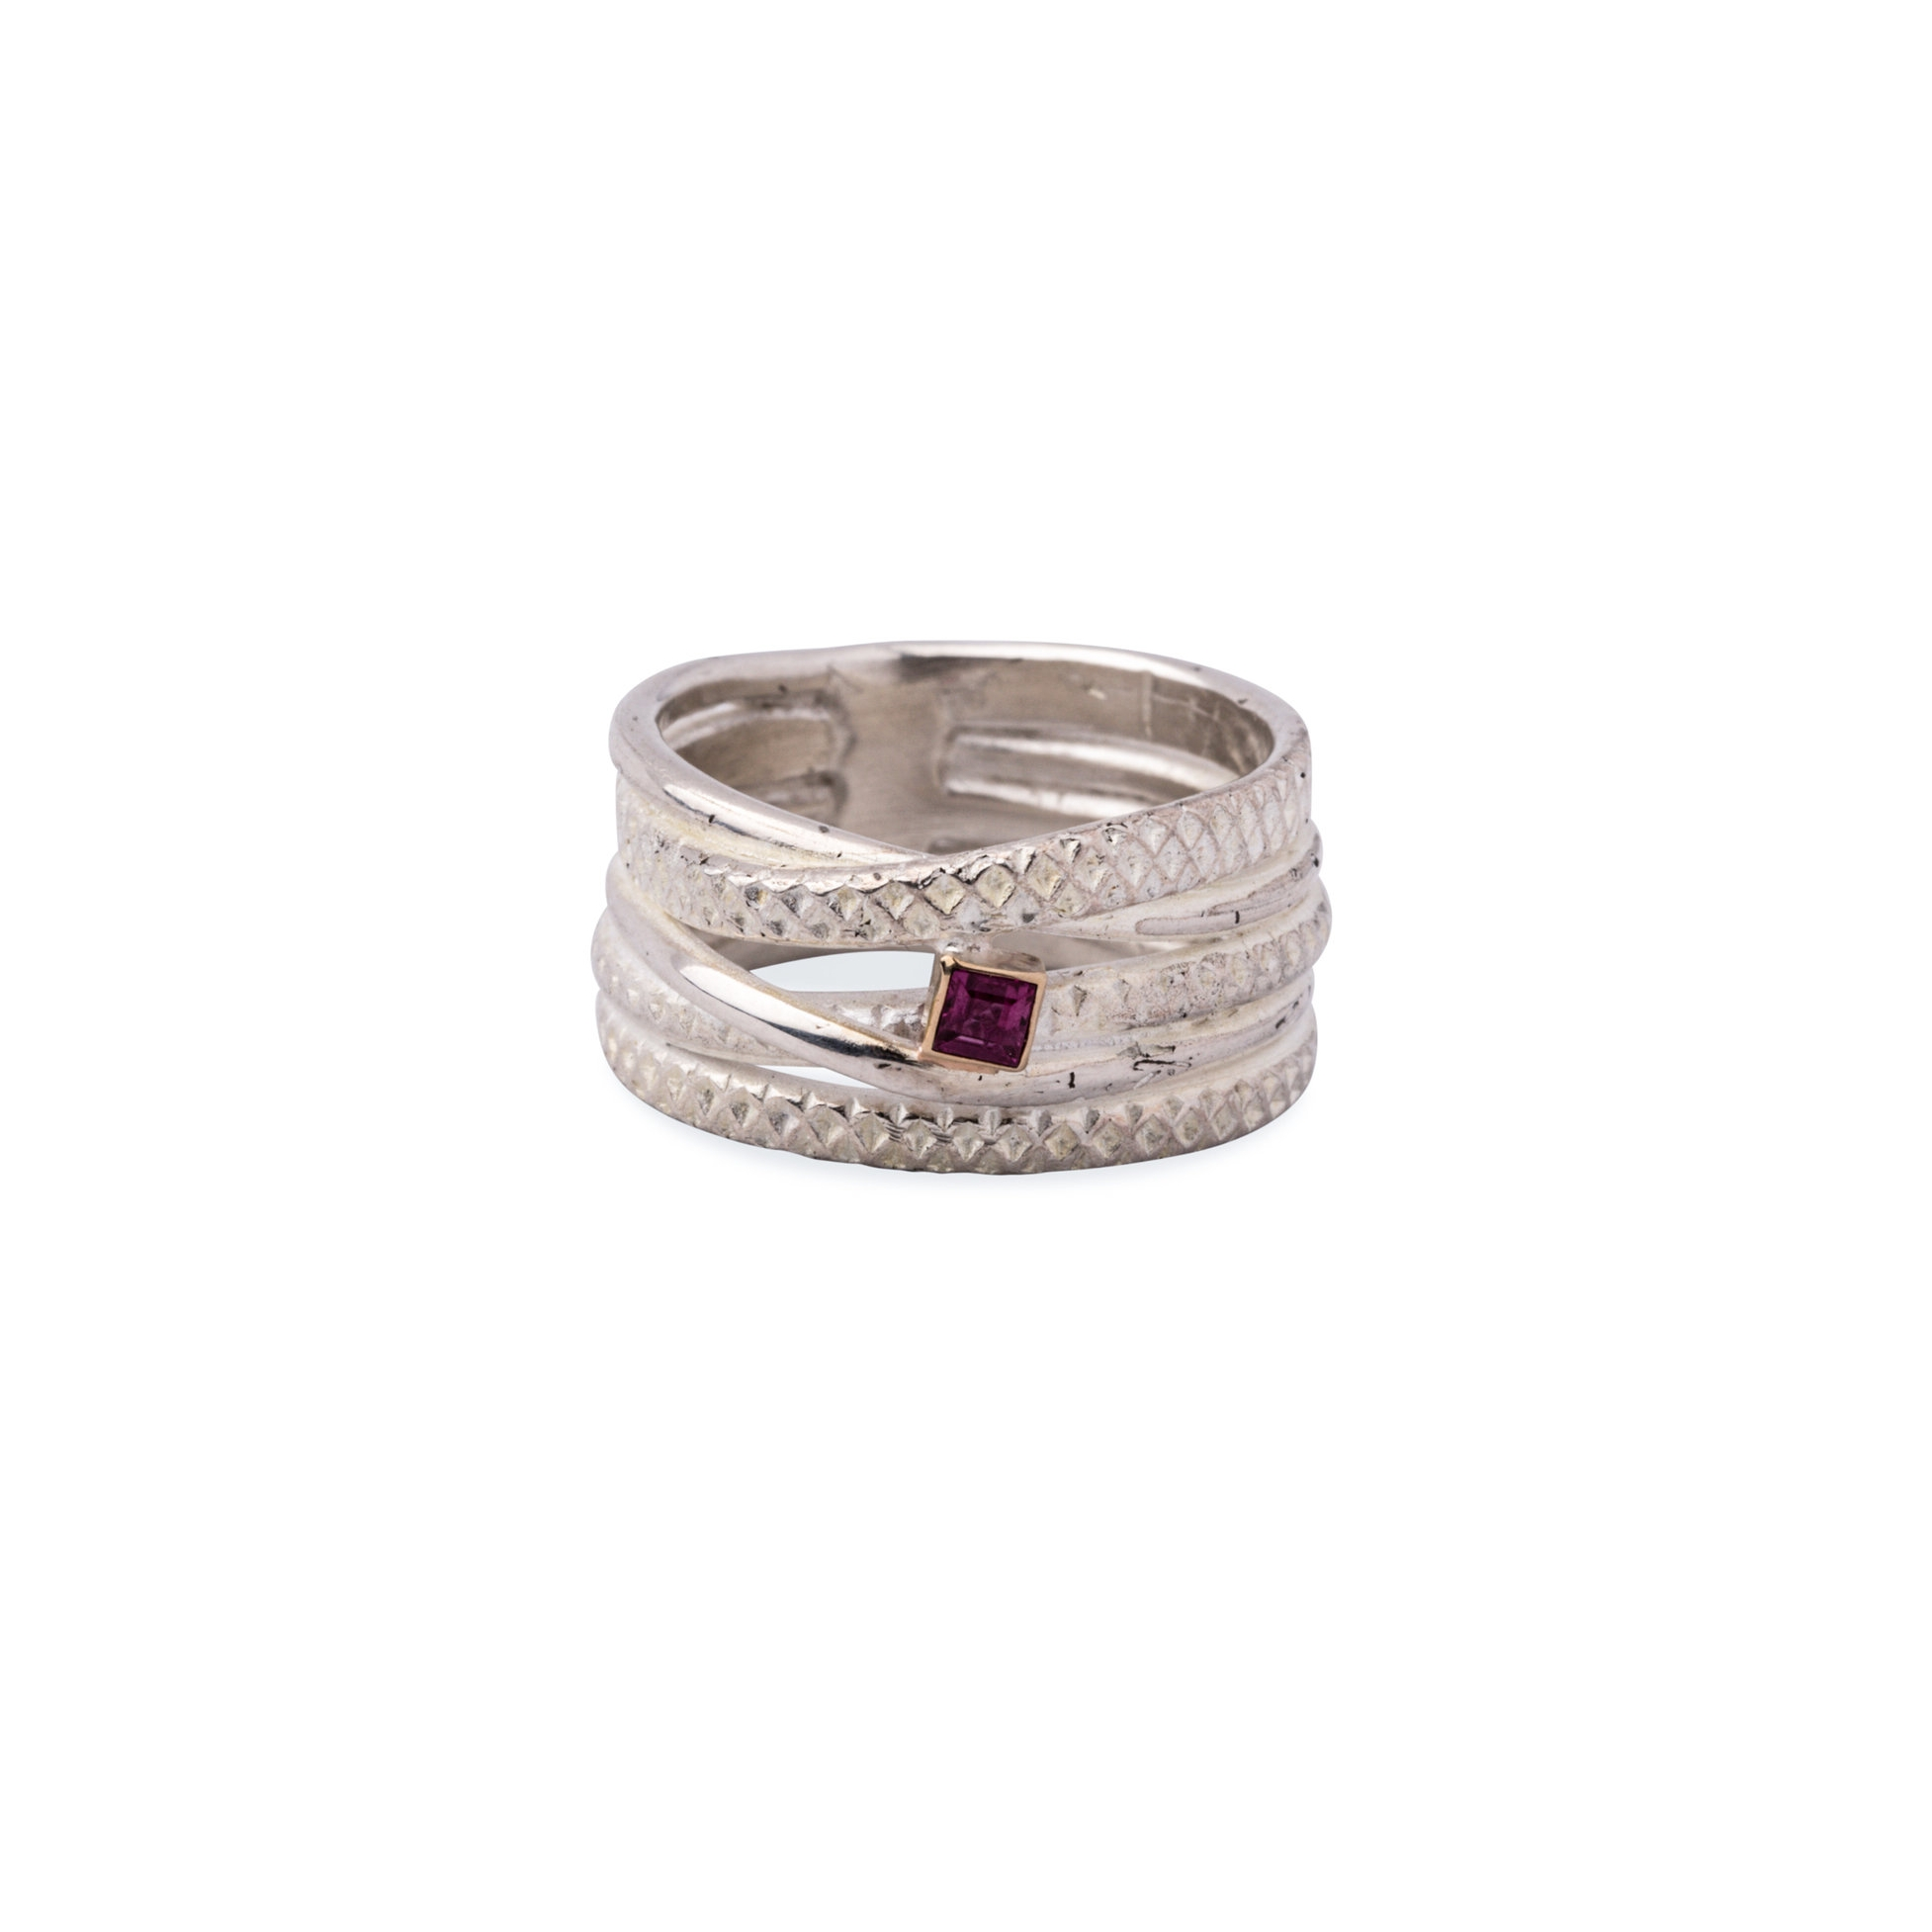 ring_lace_cup_16223.JPG